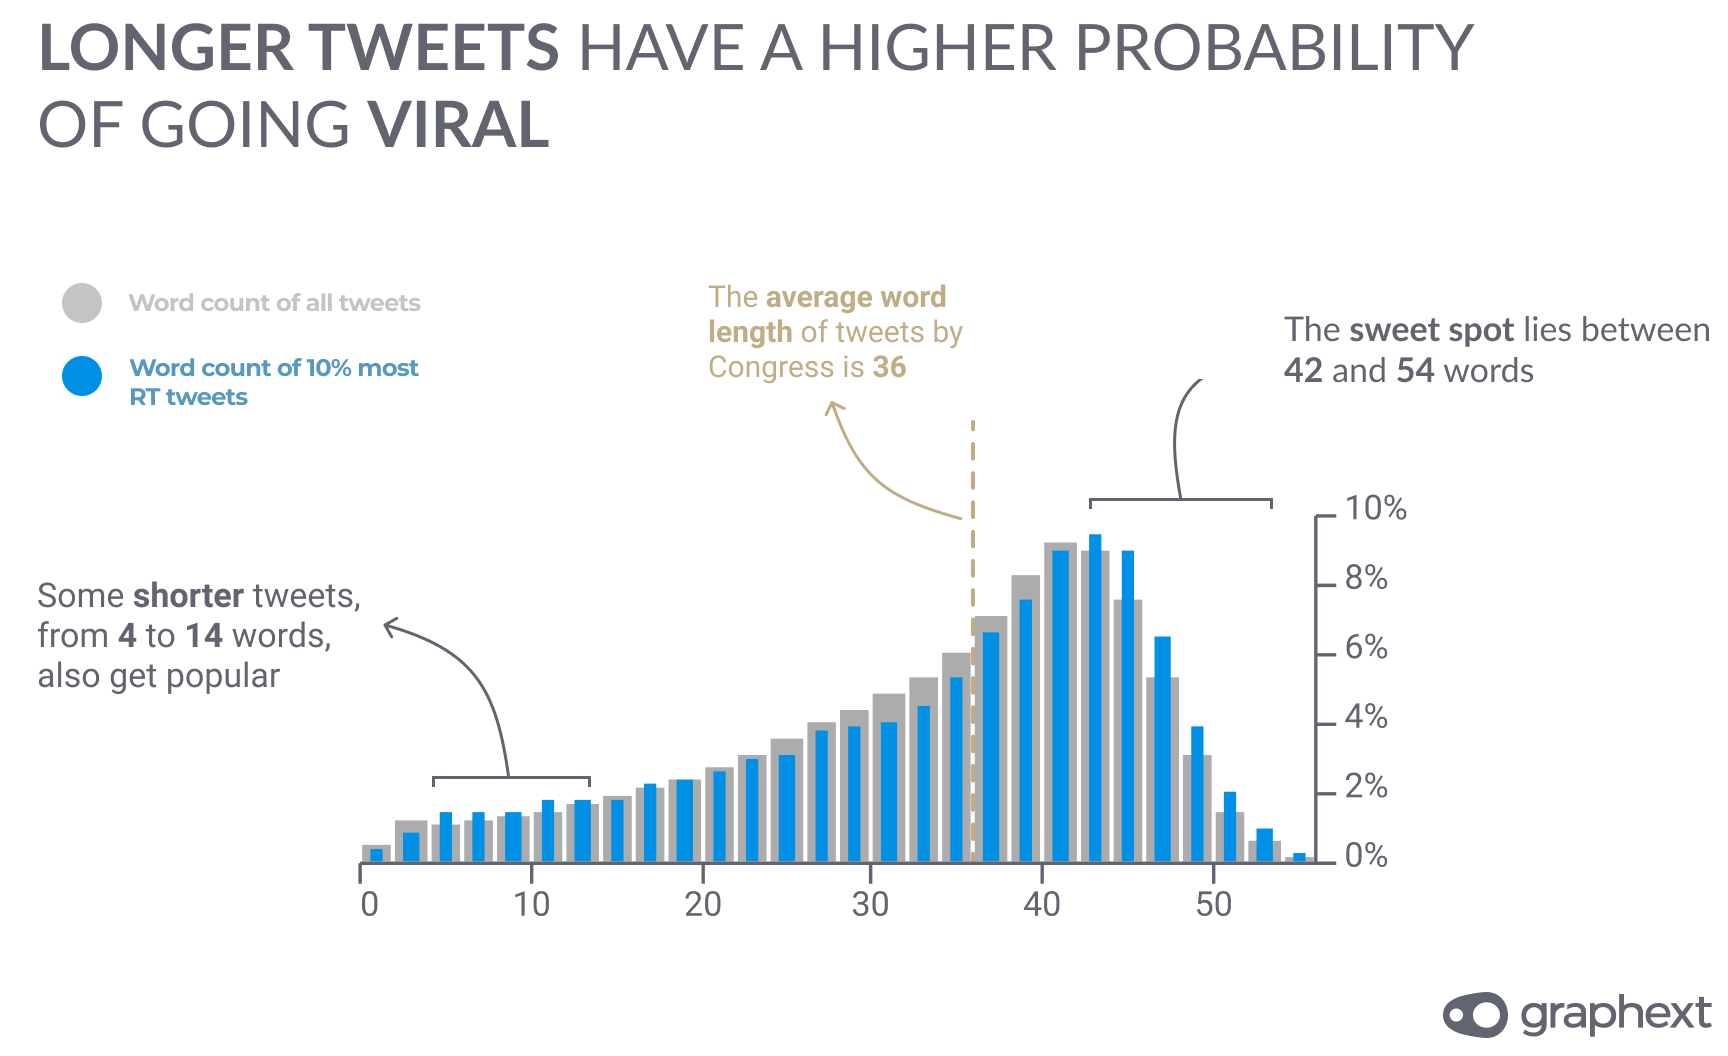 A chart showing that longer tweets have a higher probability of going viral.